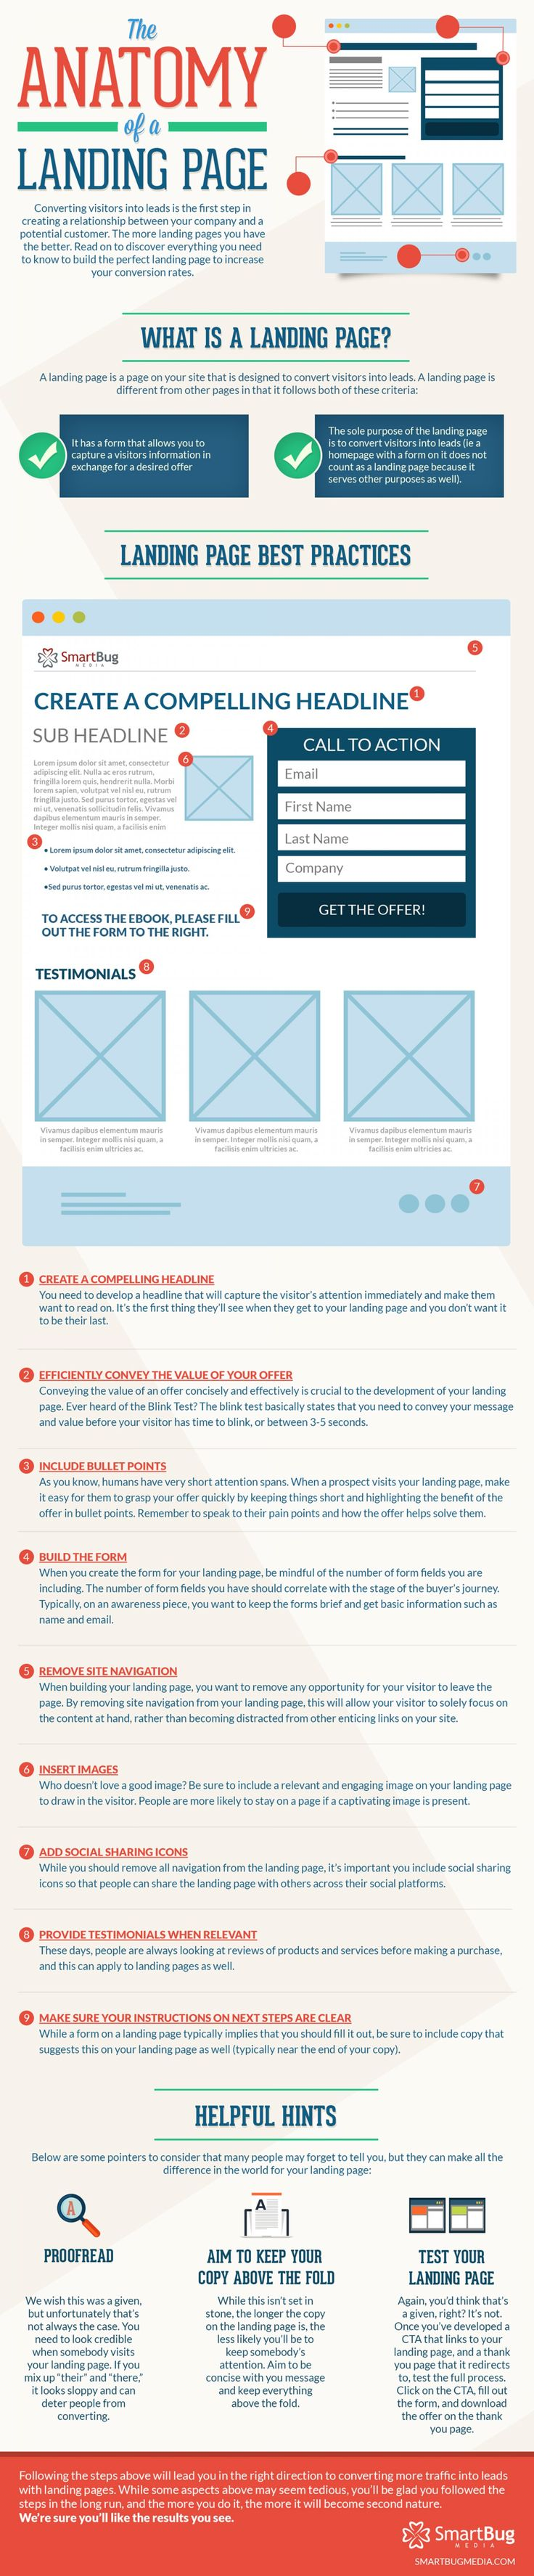 The Anatomy of a Landing Page Infographic